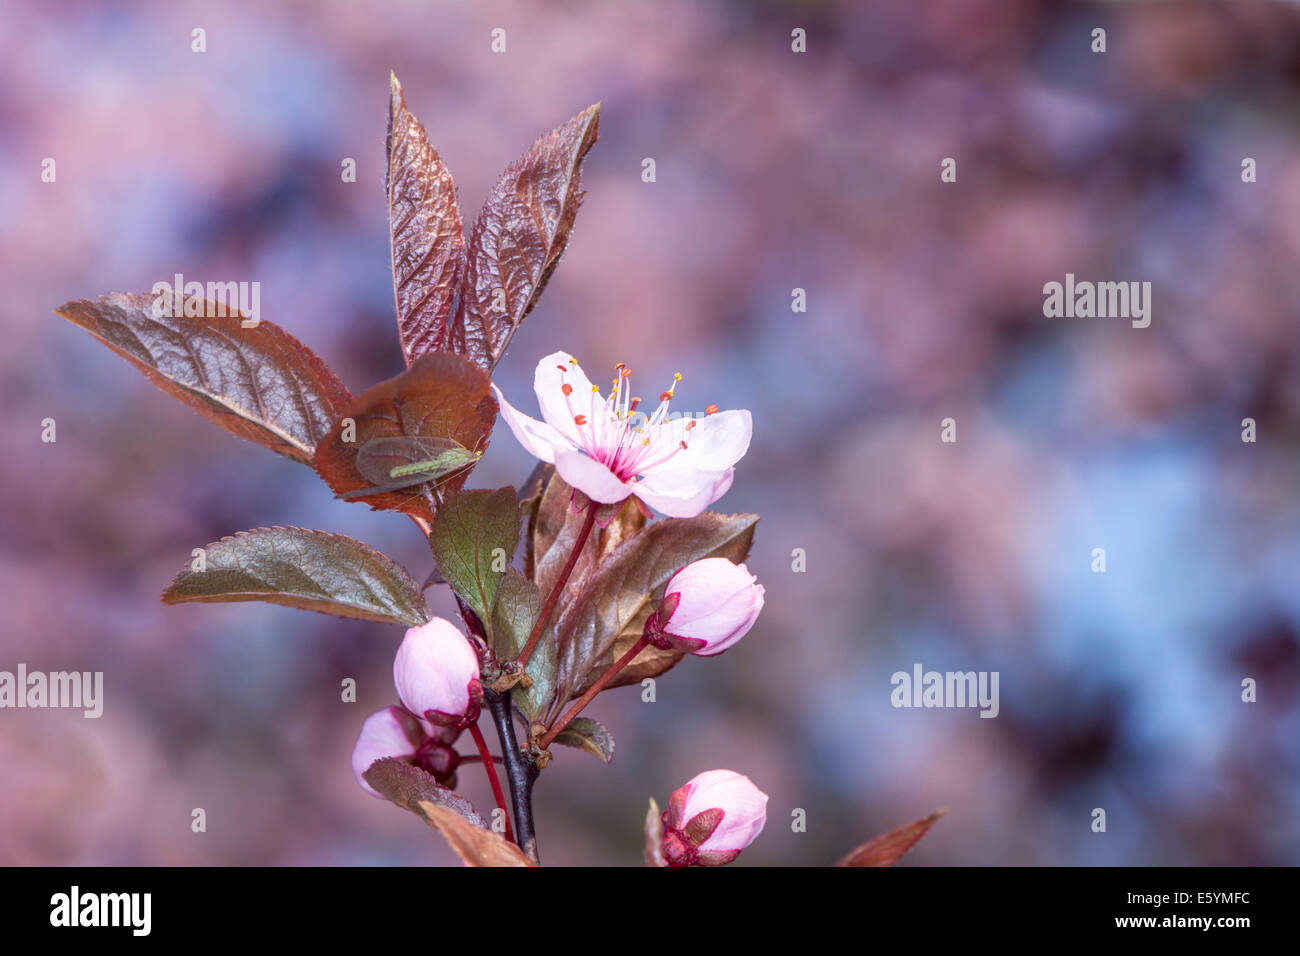 Spring scenic - twig with pink plum blossoms - Stock Image